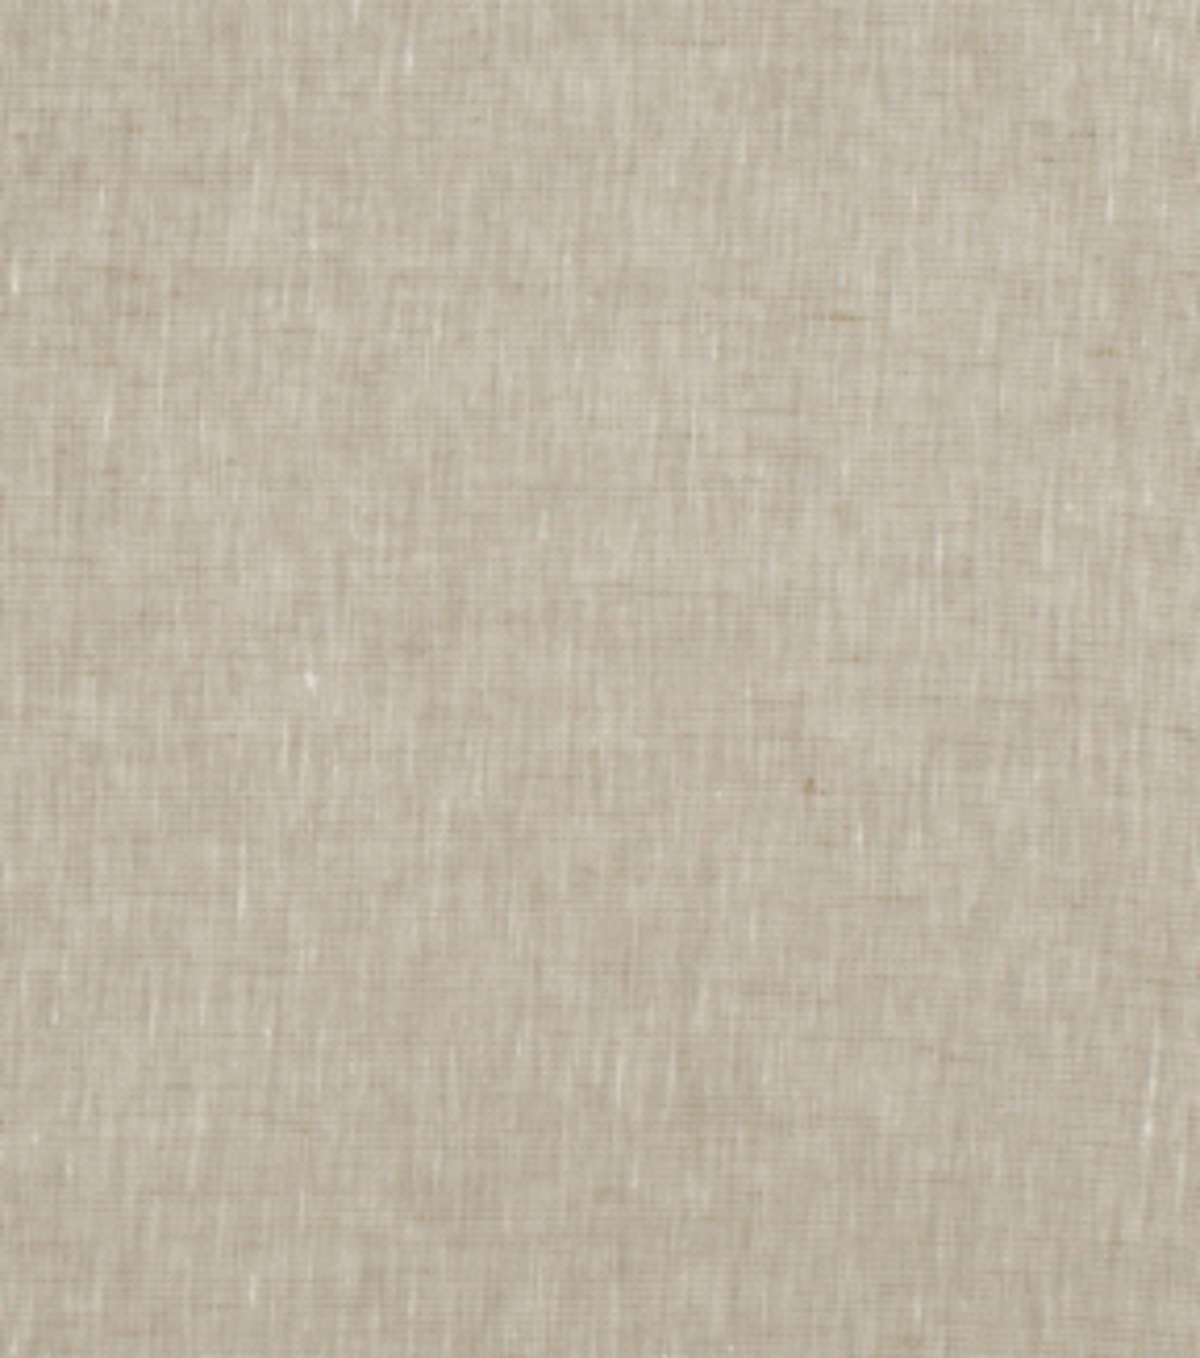 Home Decor 8\u0022x8\u0022 Fabric Swatch-Eaton Square Equity Rattan